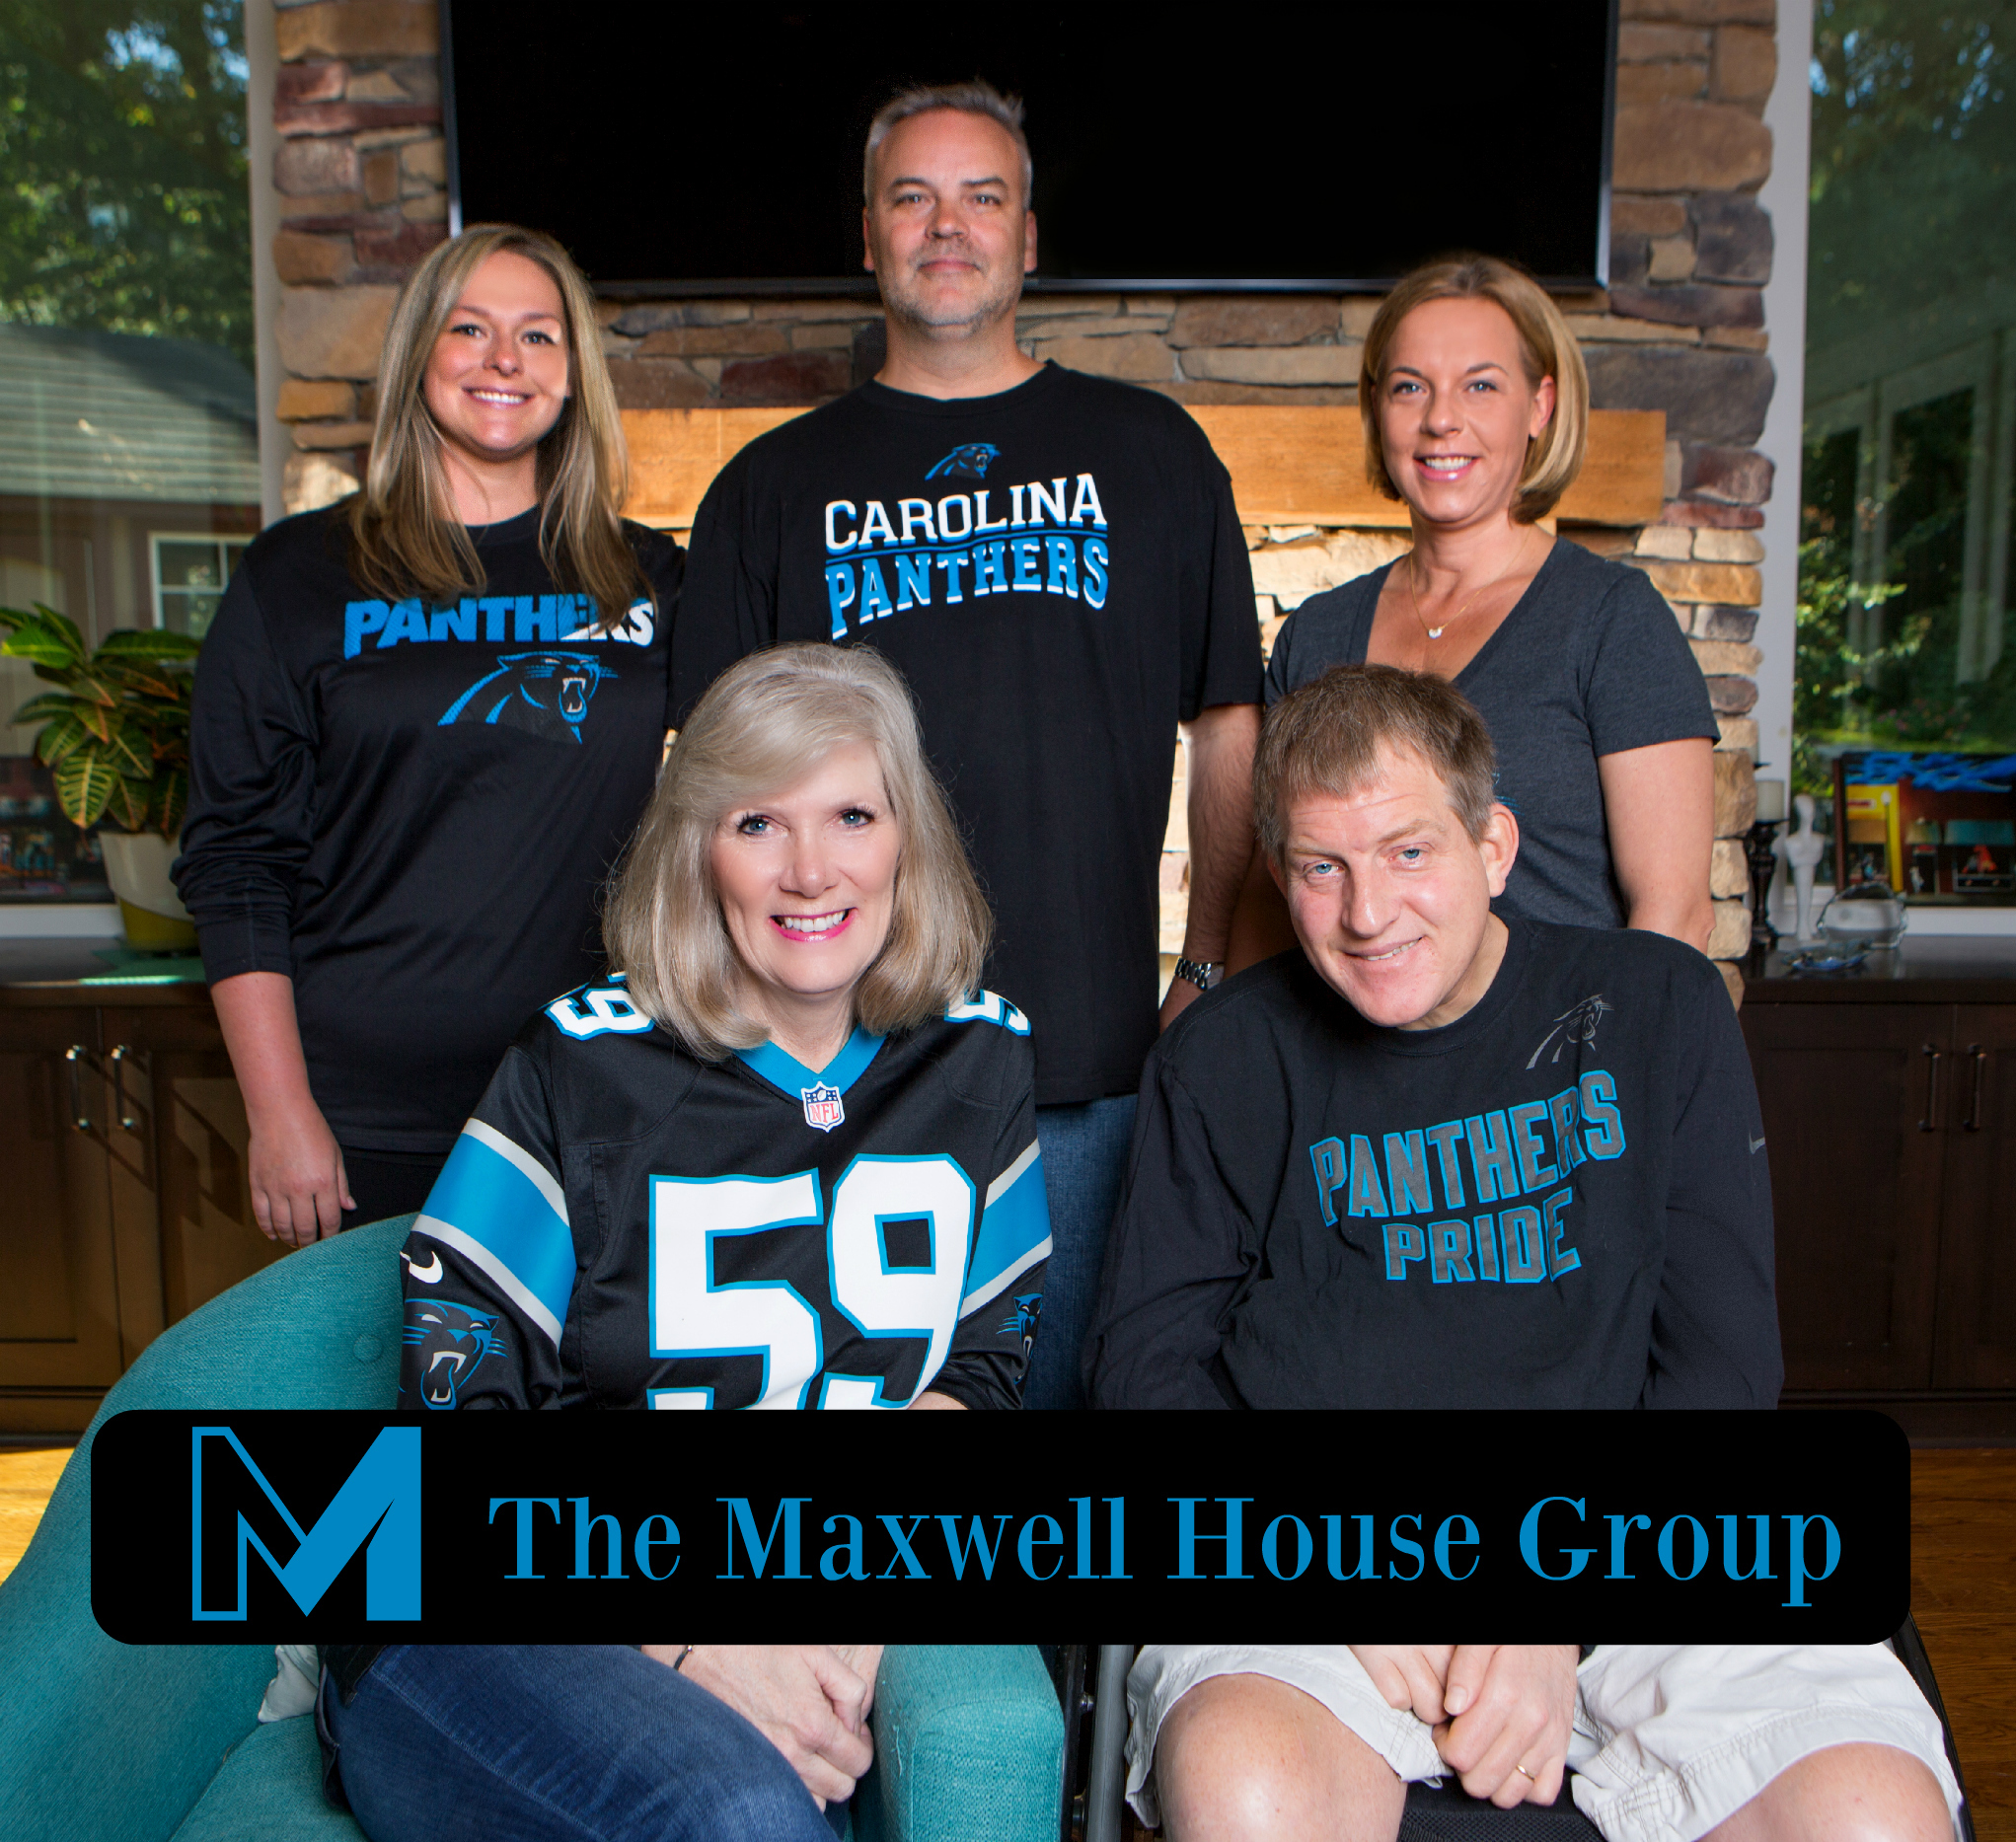 Charlotte Real Estate Team - The Maxwell House Group